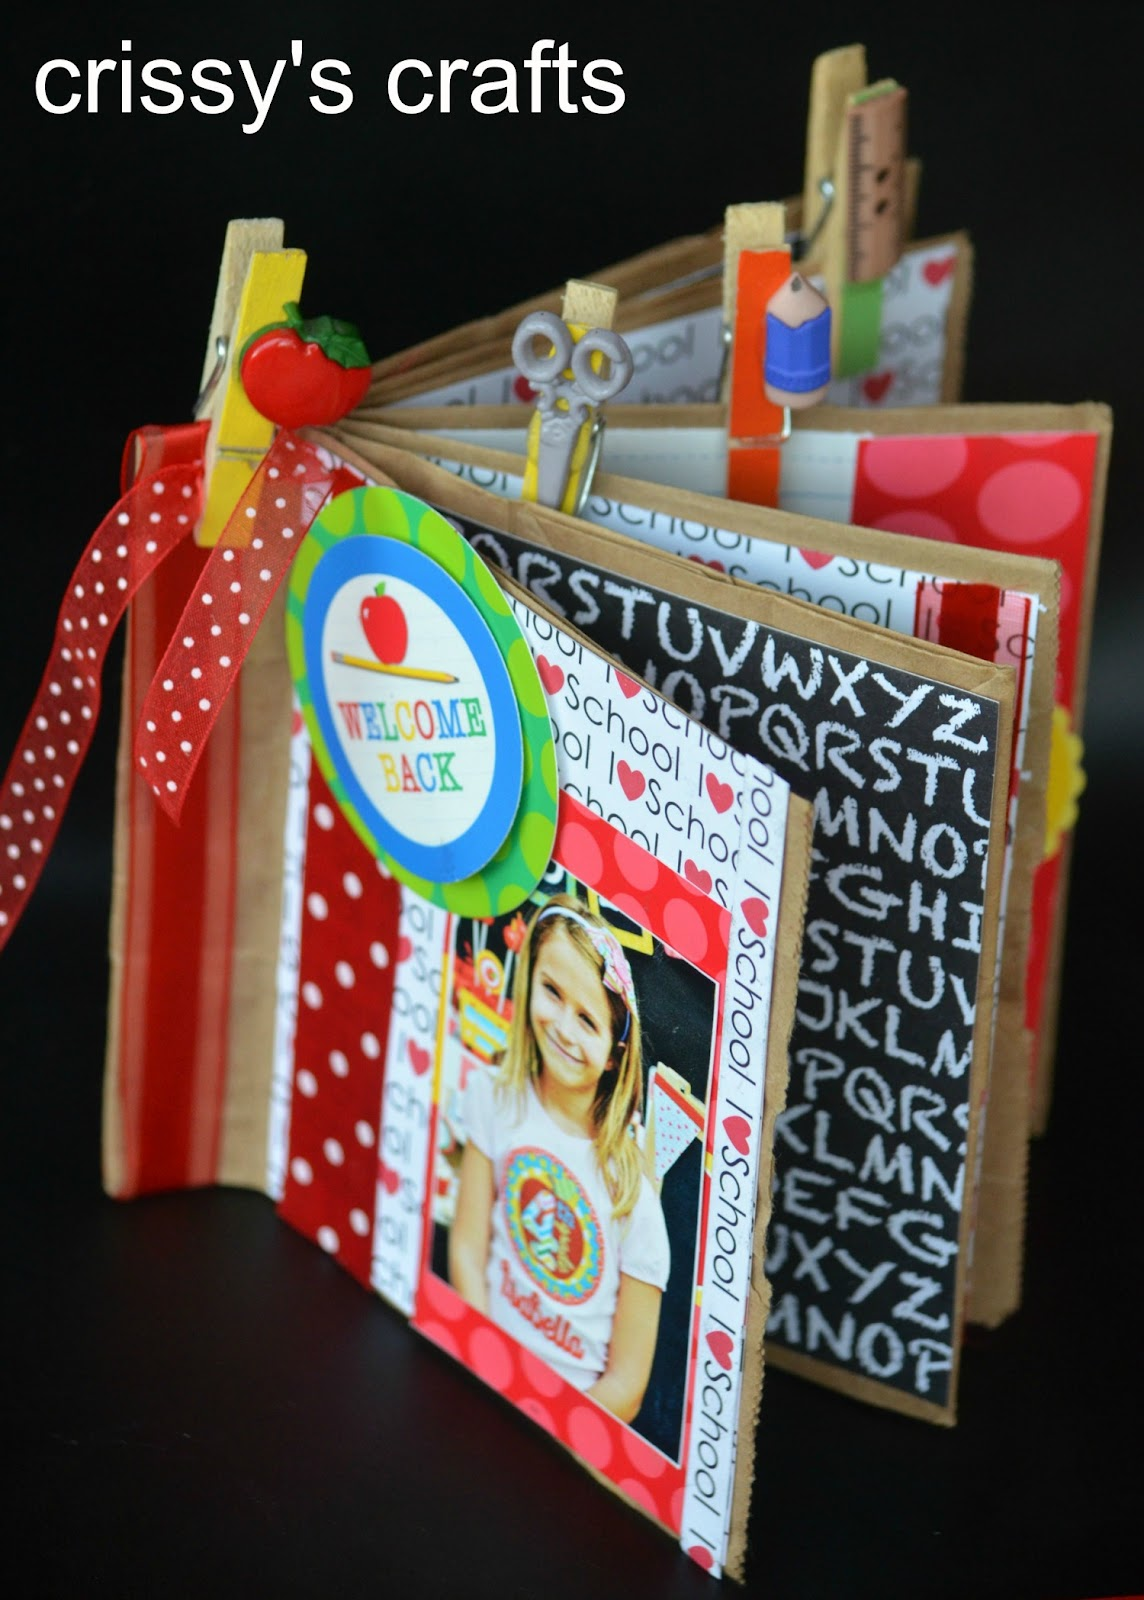 How to make a homemade scrapbook with construction paper - How To Make A Homemade Scrapbook With Construction Paper Diy Mini Scrapbook